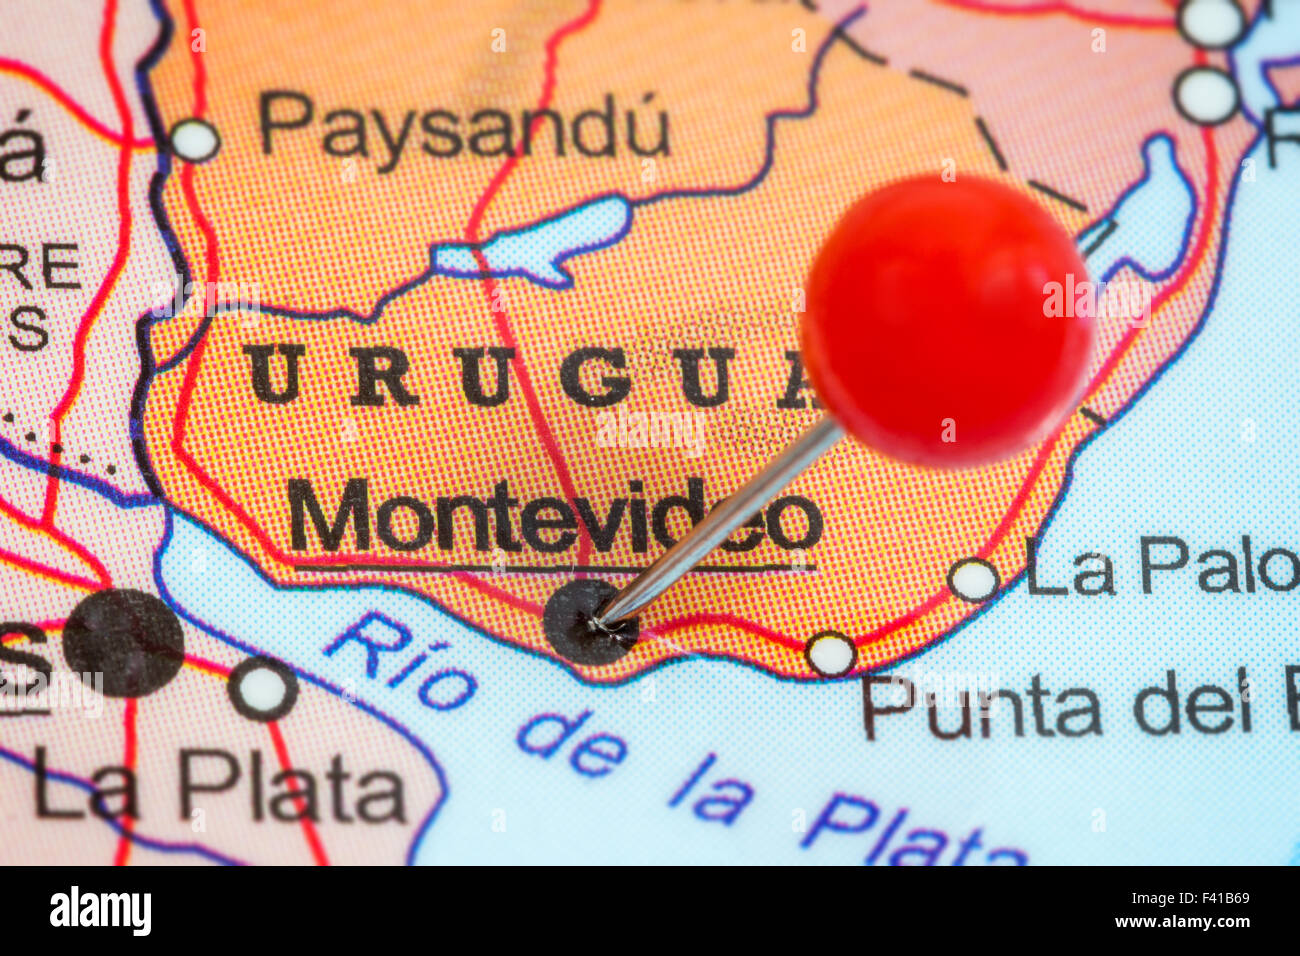 Close-up of a red pushpin in a map of Montevideo, Uruguay. - Stock Image